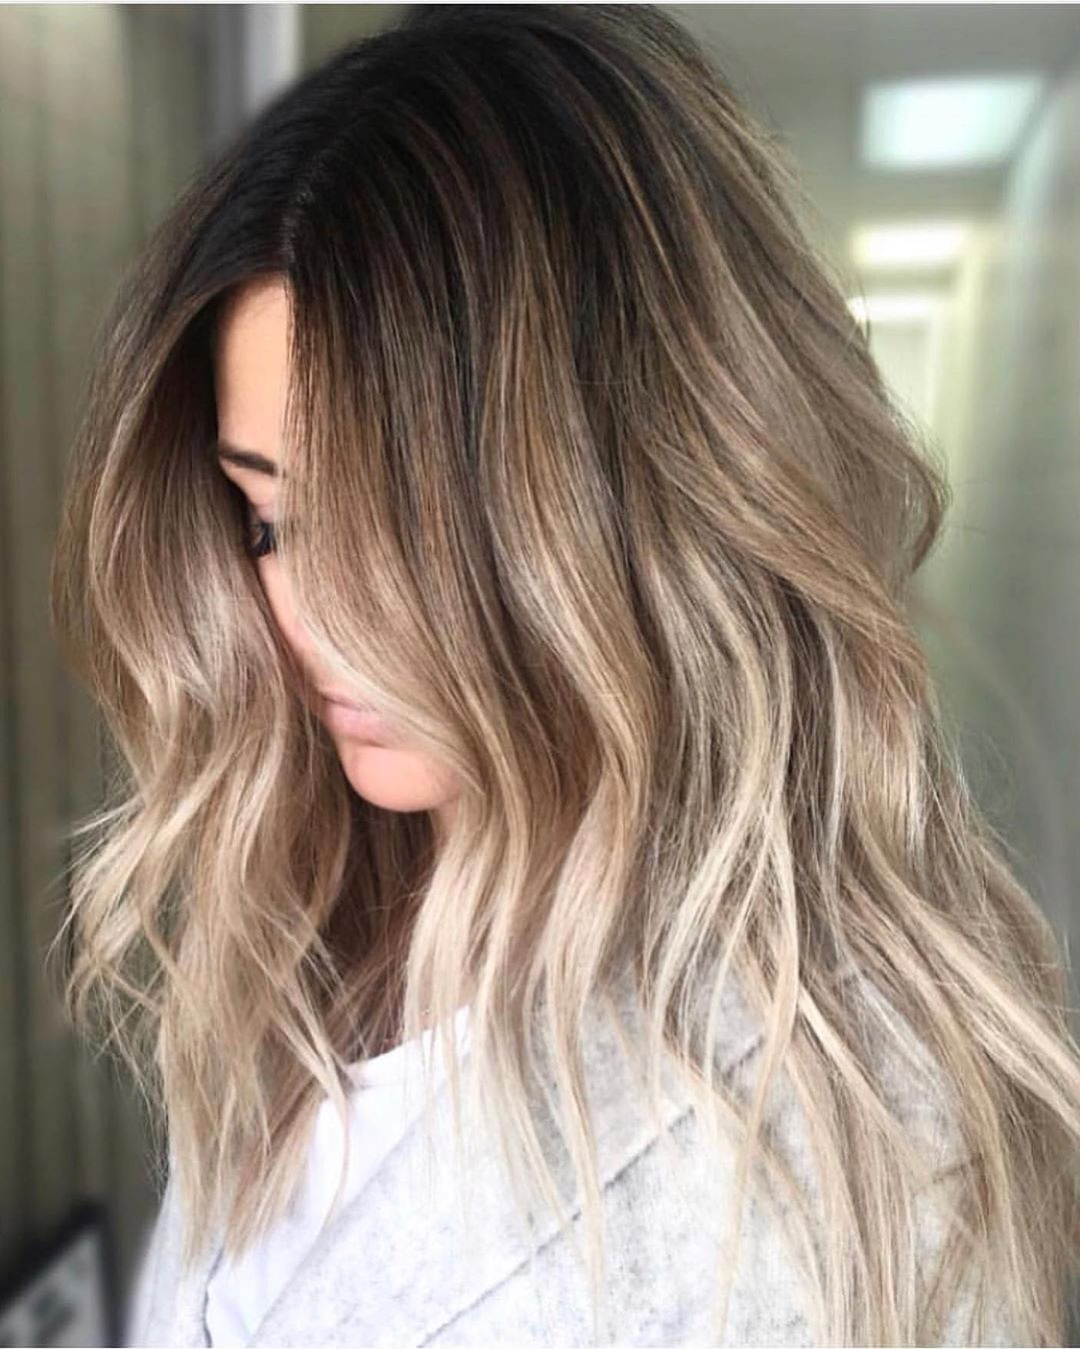 60 Trendy Long Hairstyles for Women to Try This Summer